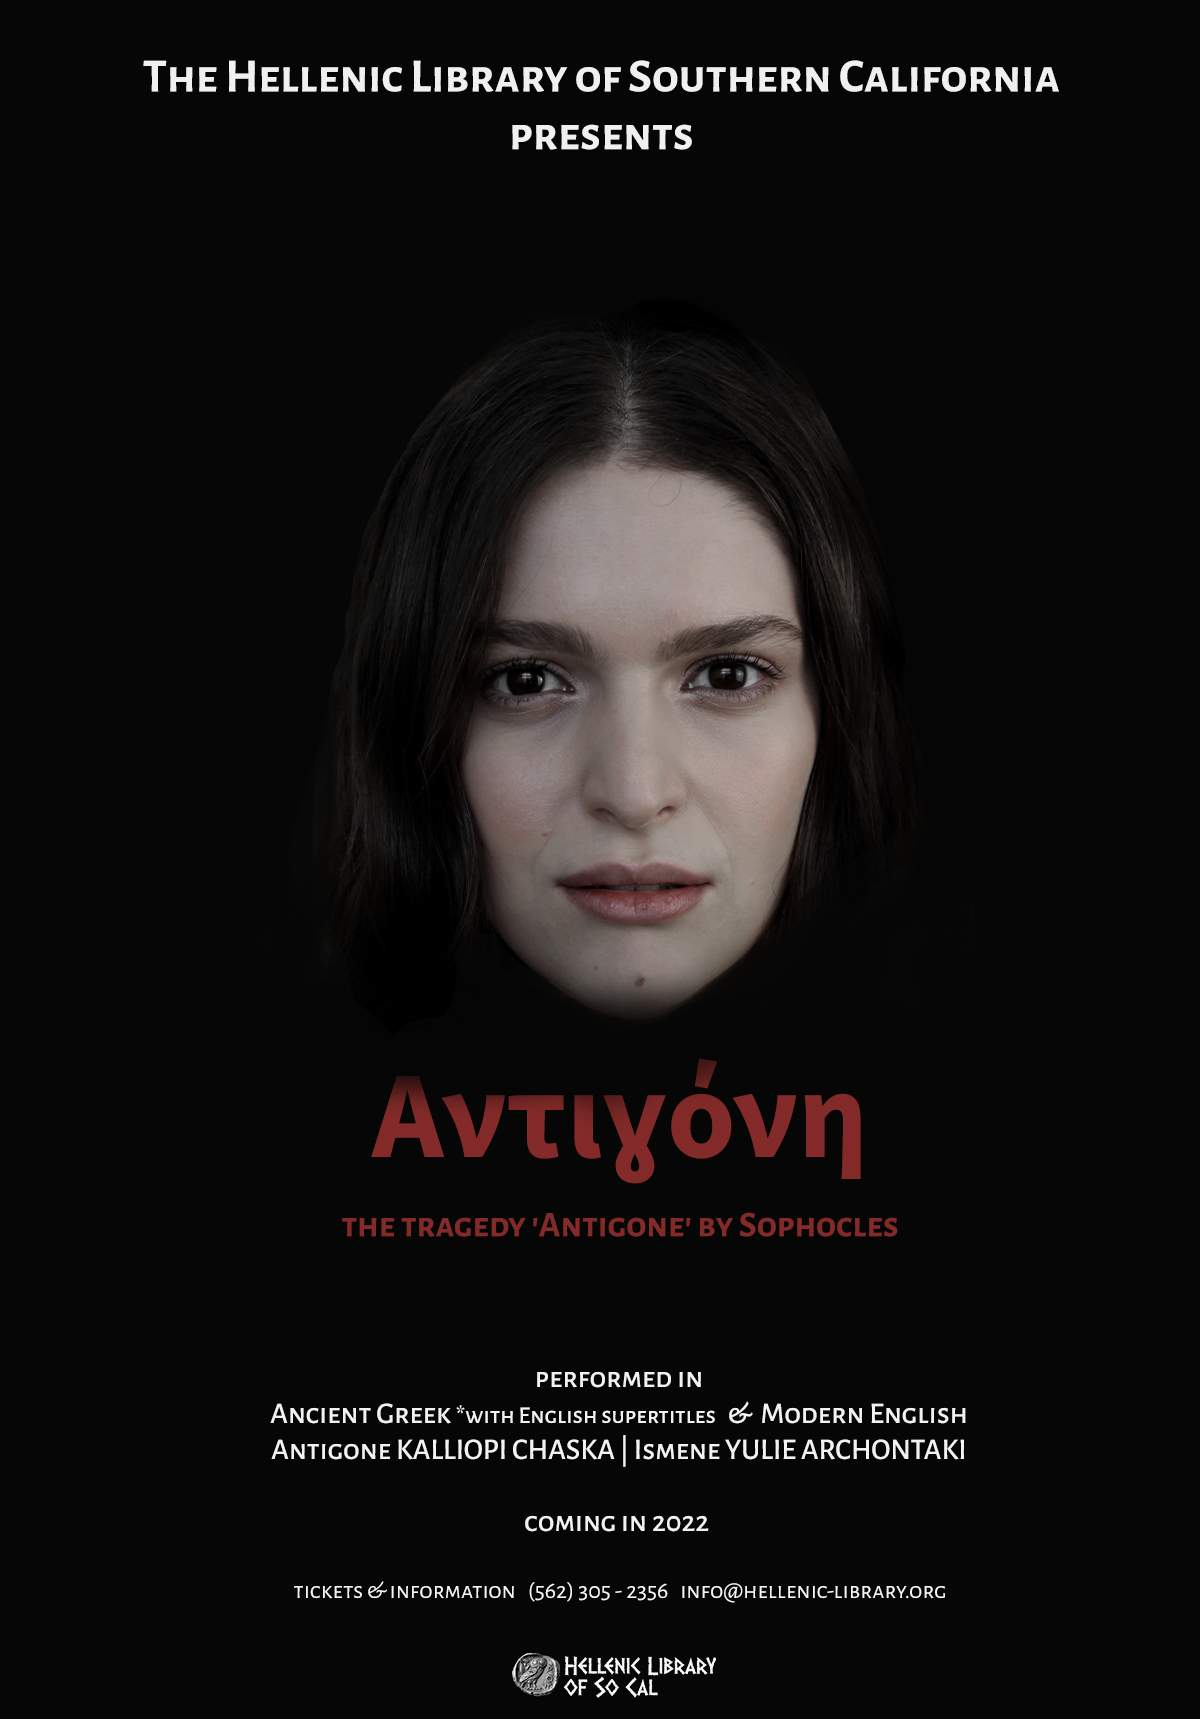 Kalliopi Chaska to Appear in the Title Role of Antigone for the Hellenic Library of SoCal Production of the Classic Greek Play